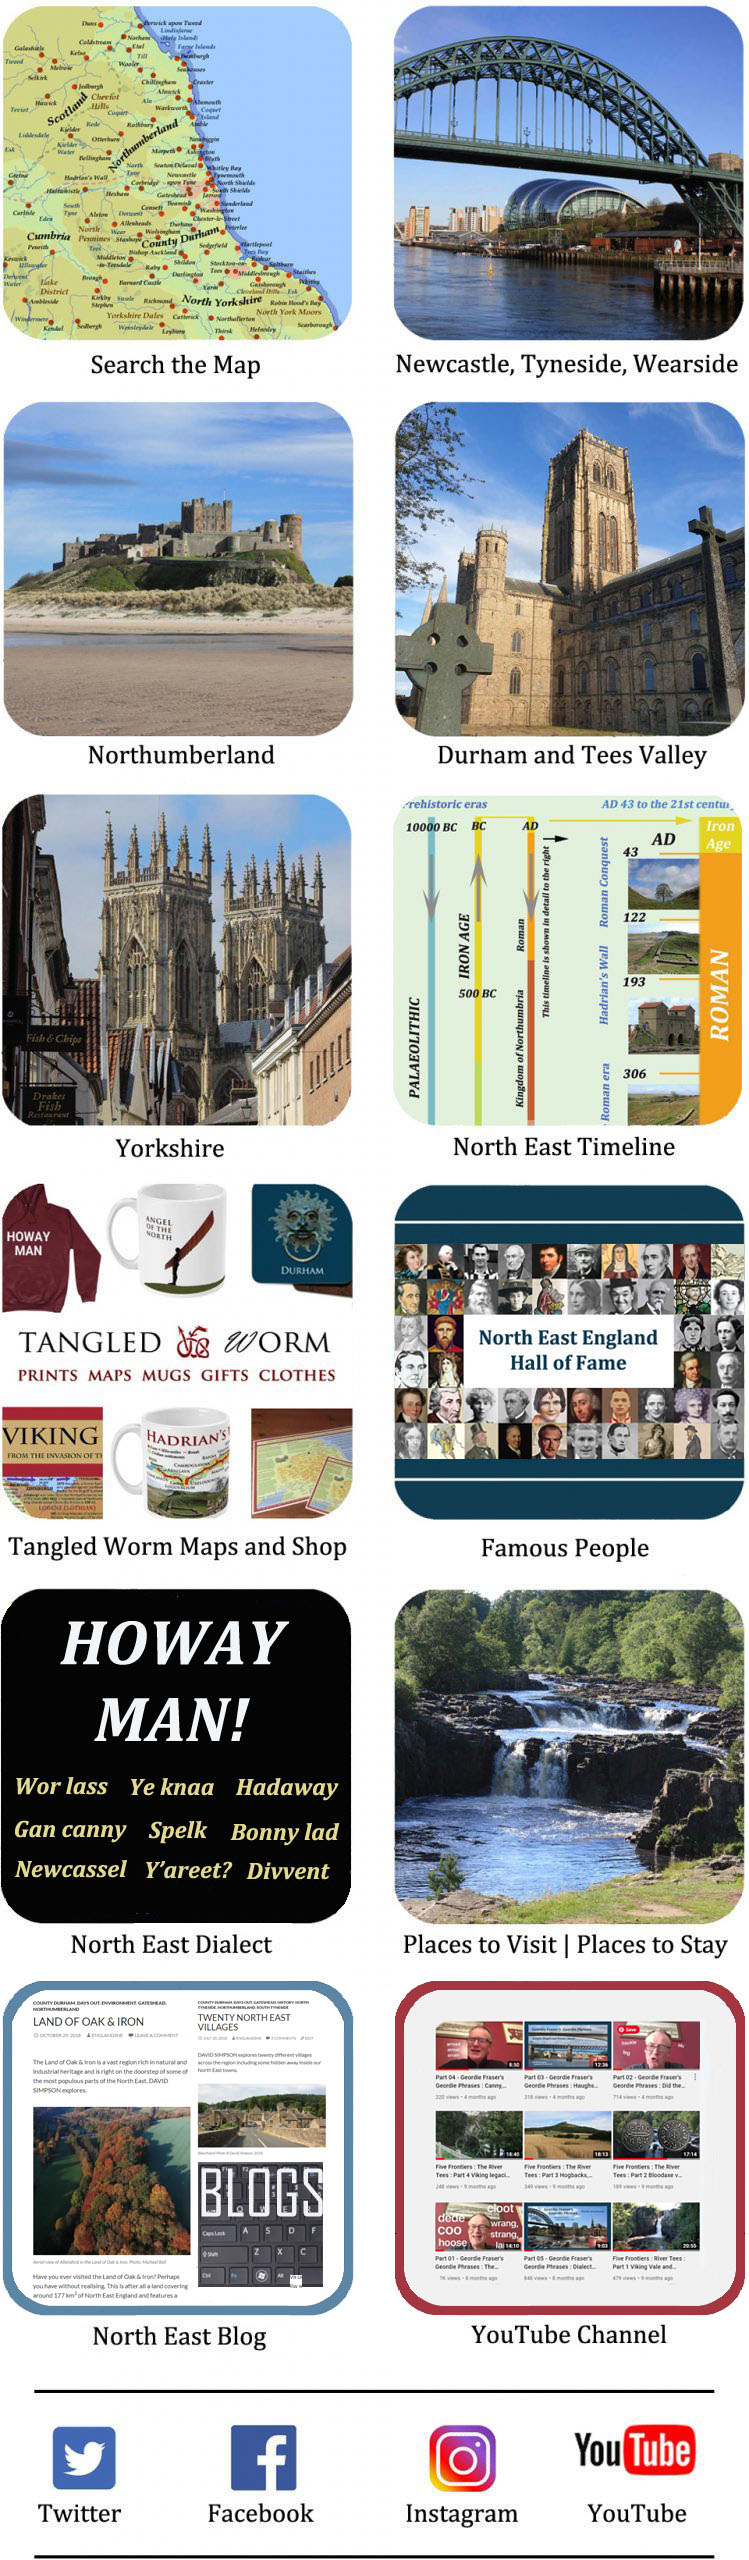 North East History and Culture